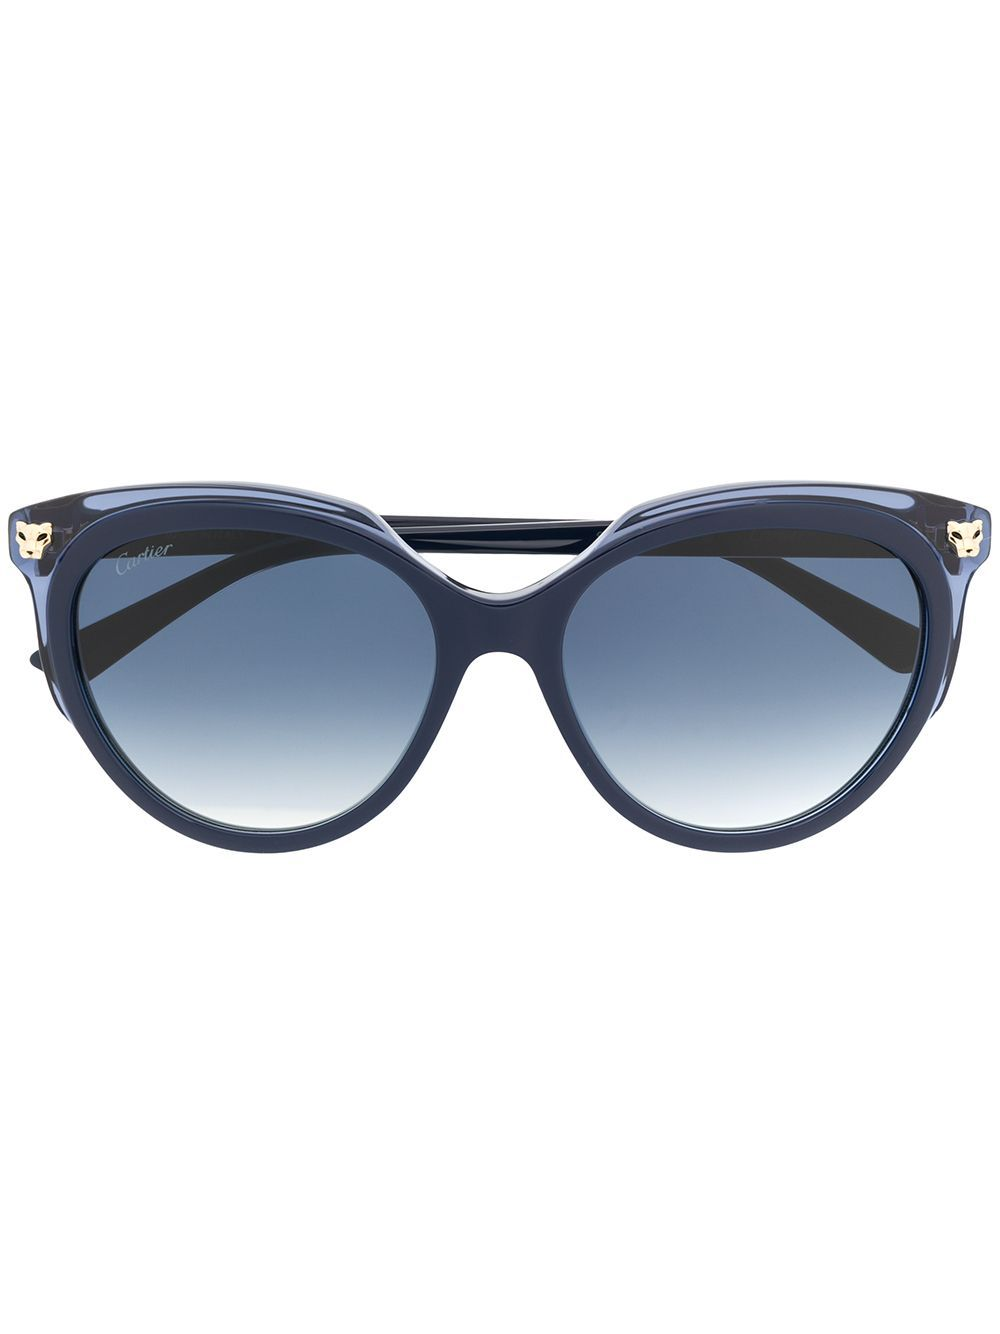 Cartier Panthere oversized frame sunglasses